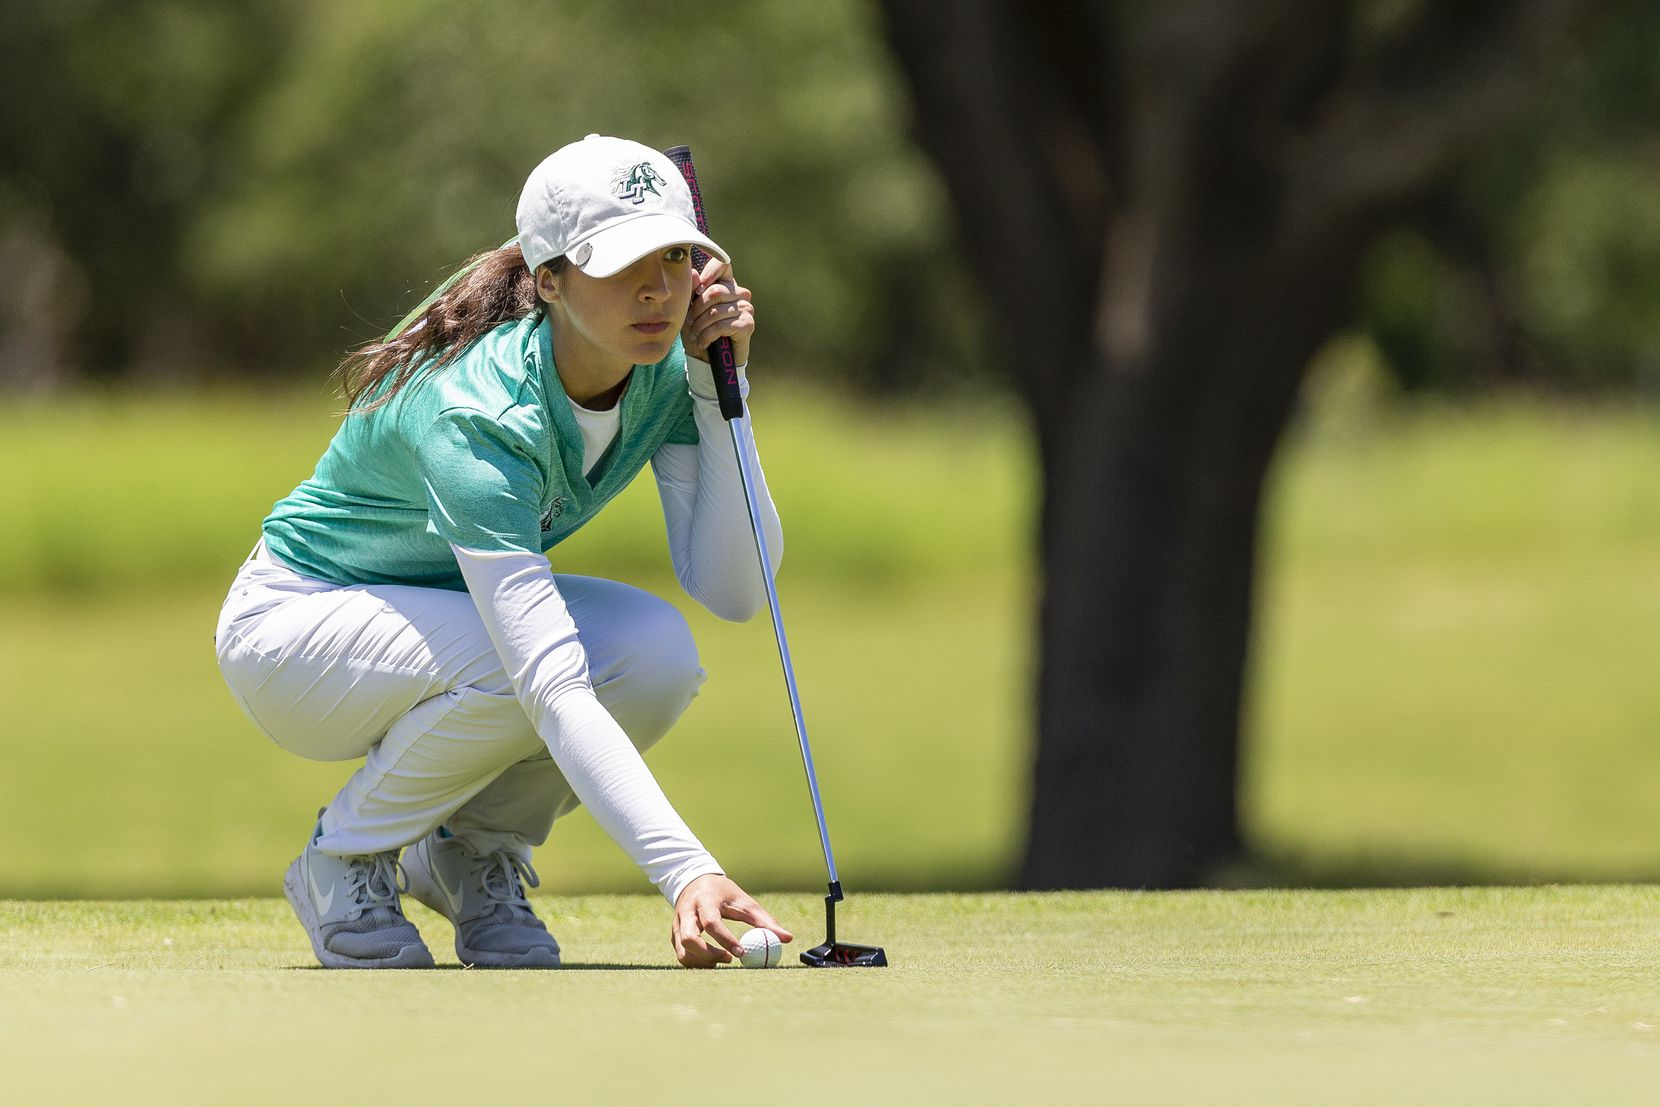 Frisco Lebanon Trail's Dominique Gomez studies her shot on the 13th green during round 1 of the UIL Class 5A girls golf tournament in Georgetown, Monday, May 13, 2019. (Stephen Spillman/Special Contributor)